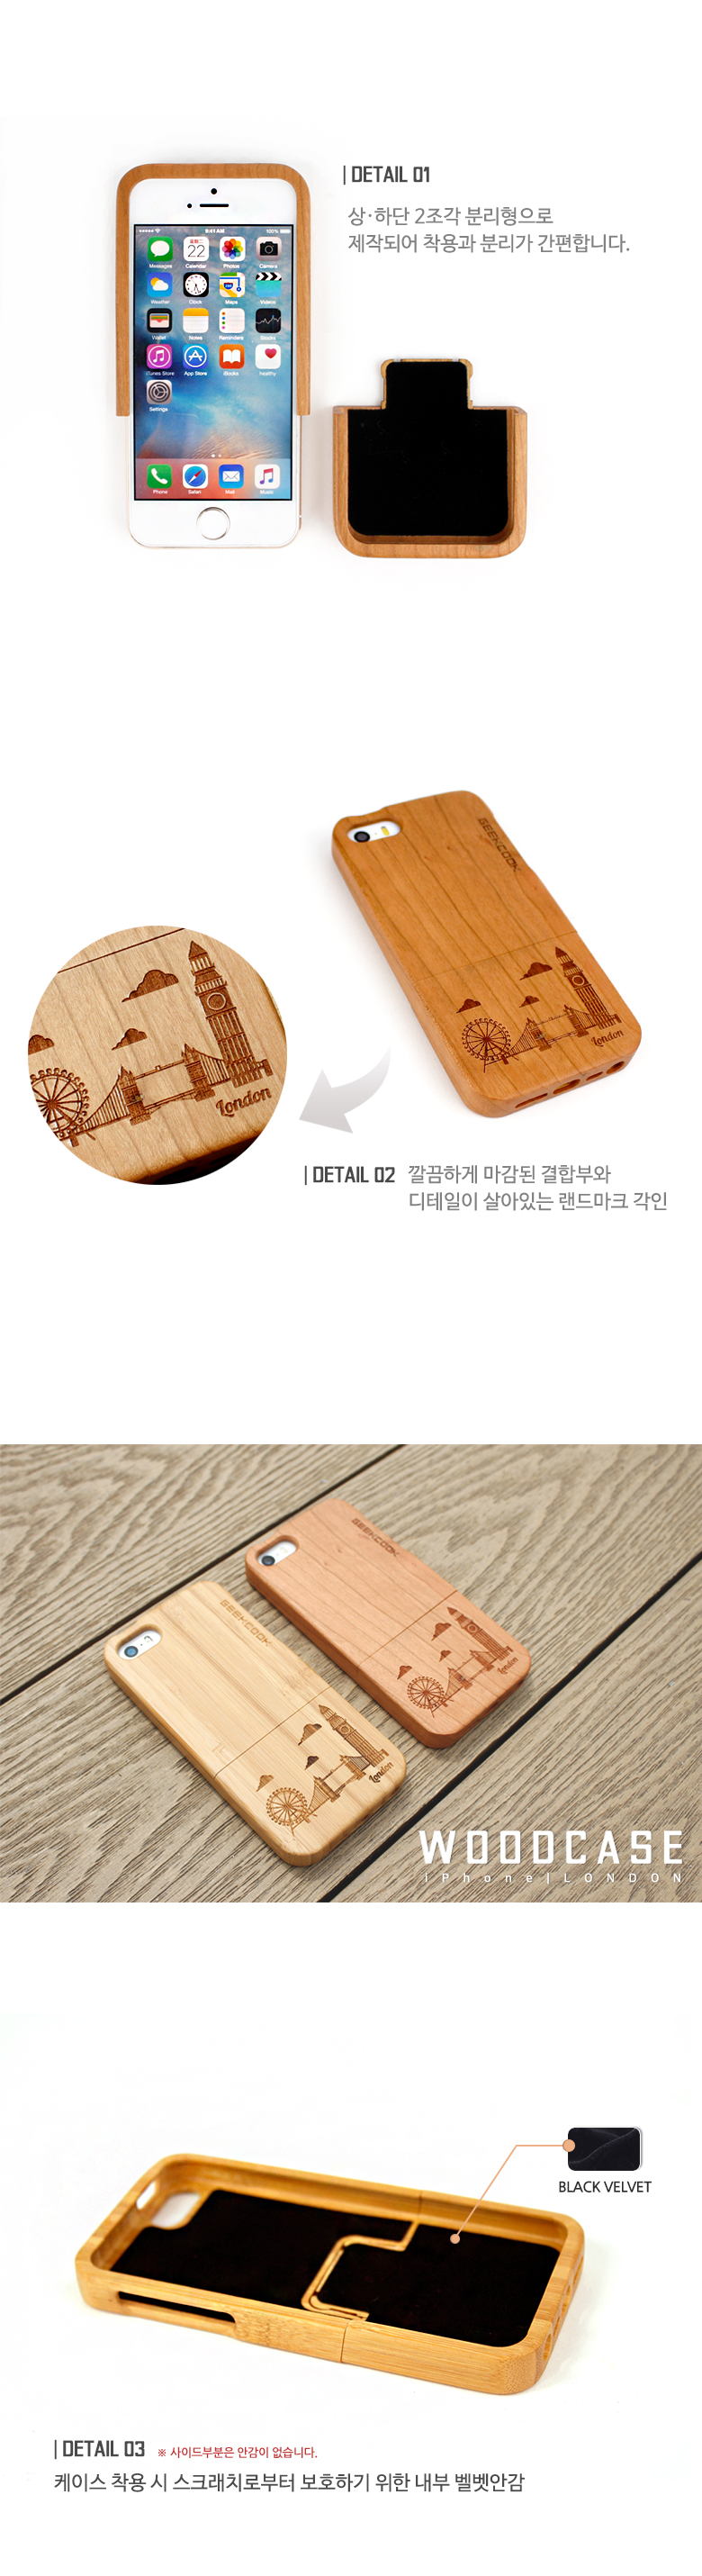 [ BISKET ] iPhone 5/5s/5se Landmark Wood Case London